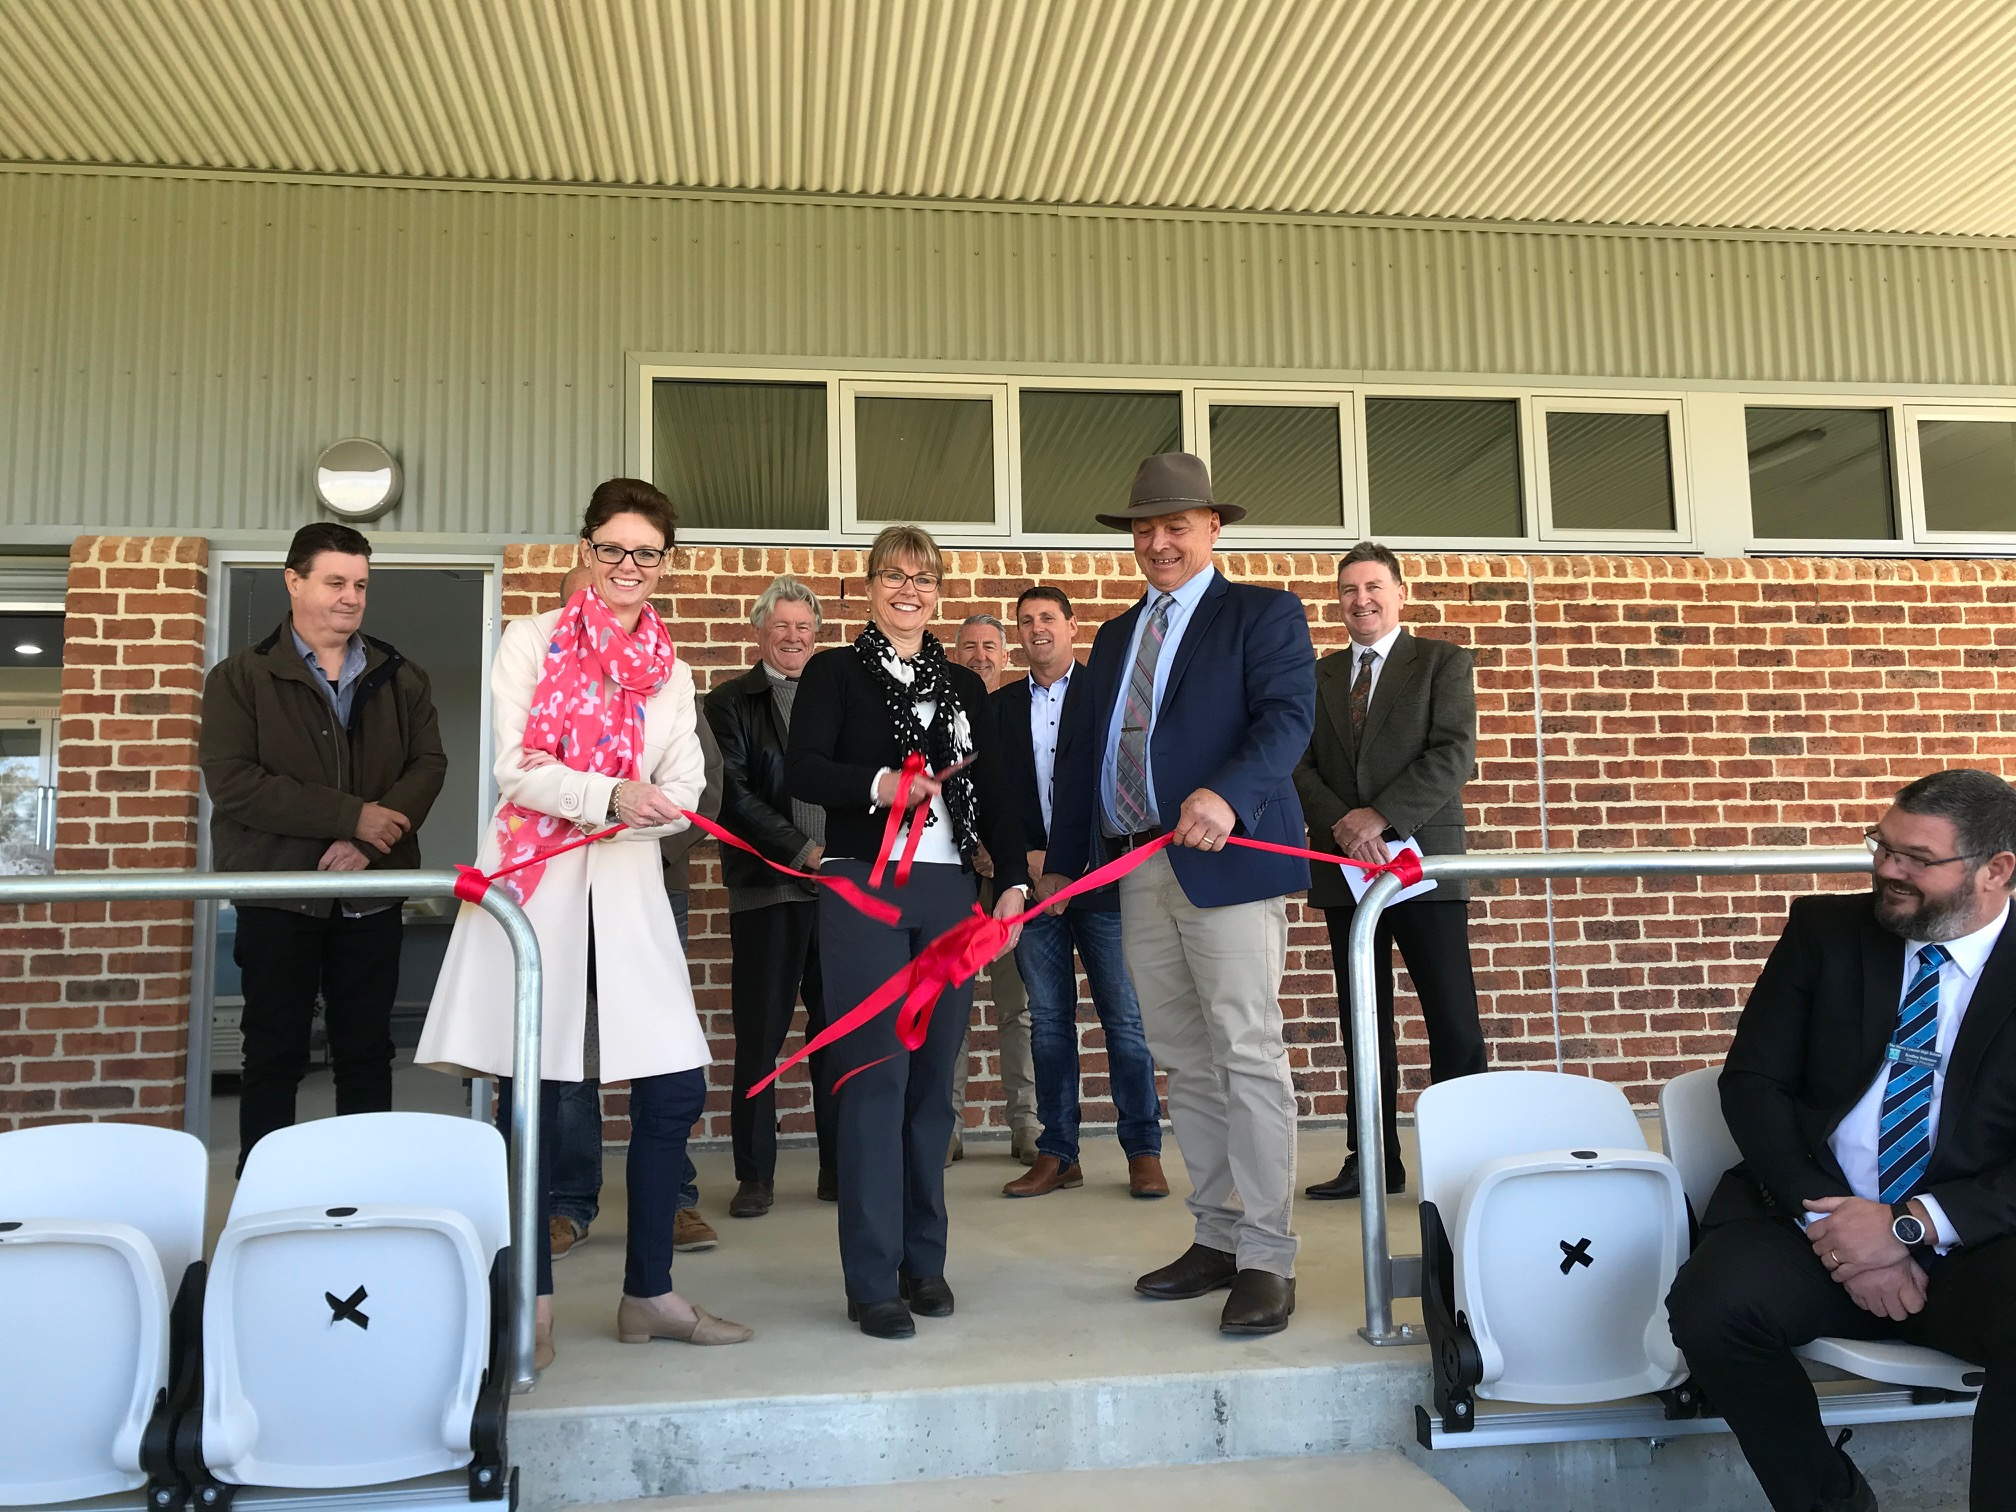 Steph Cooke, Mayor Mark Liebich and others cut a red ribbon to open the grandstand.